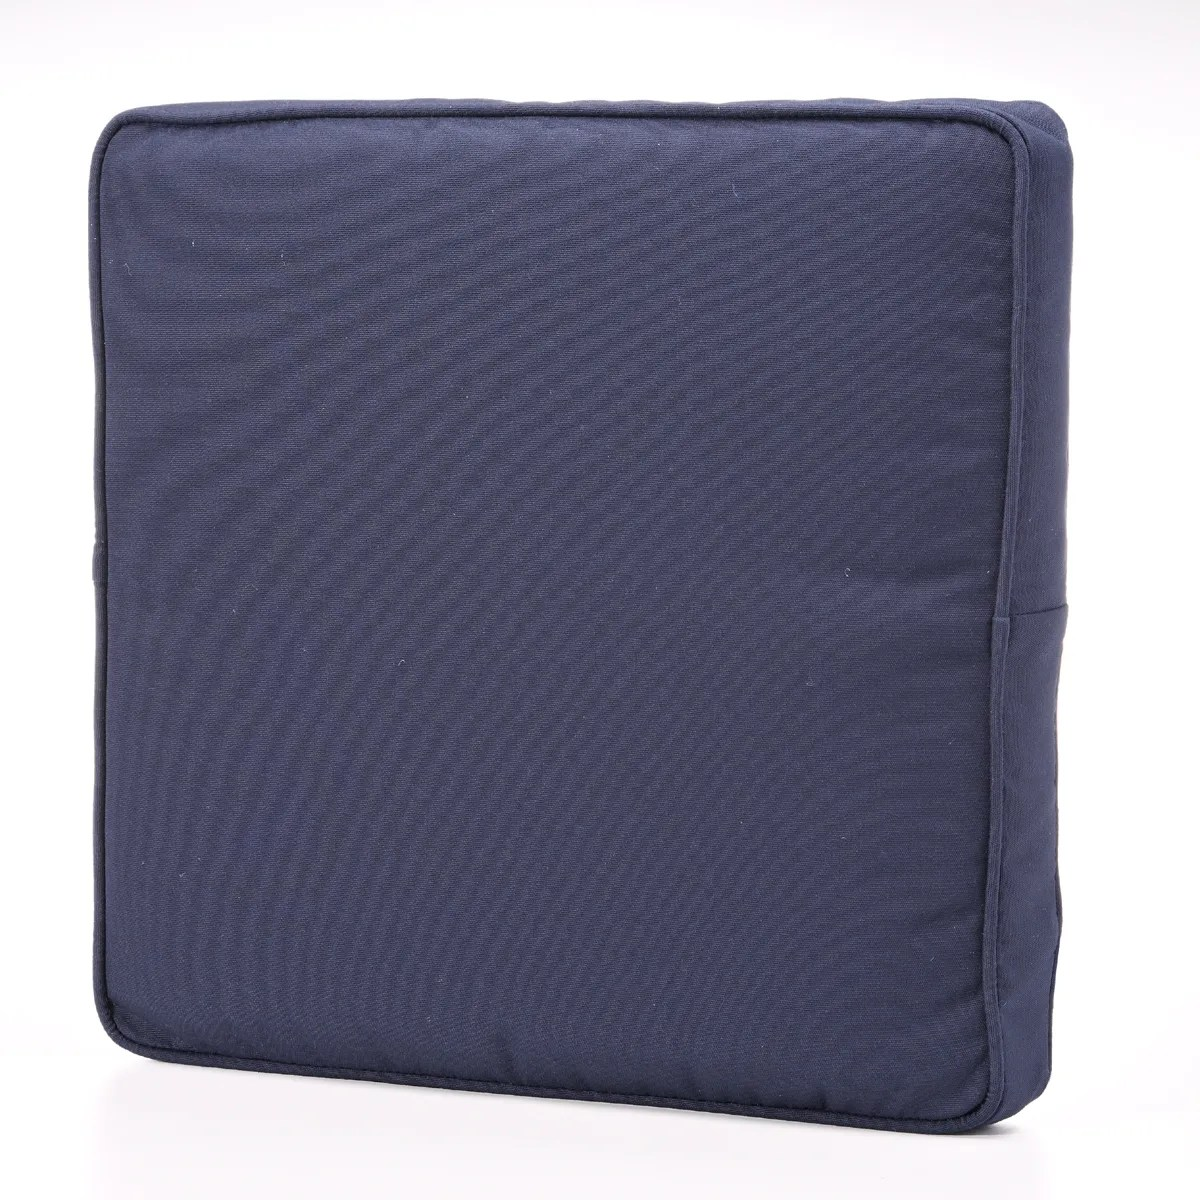 high back outdoor chair cushion covers beach for sale 46 by 22 inches furniture